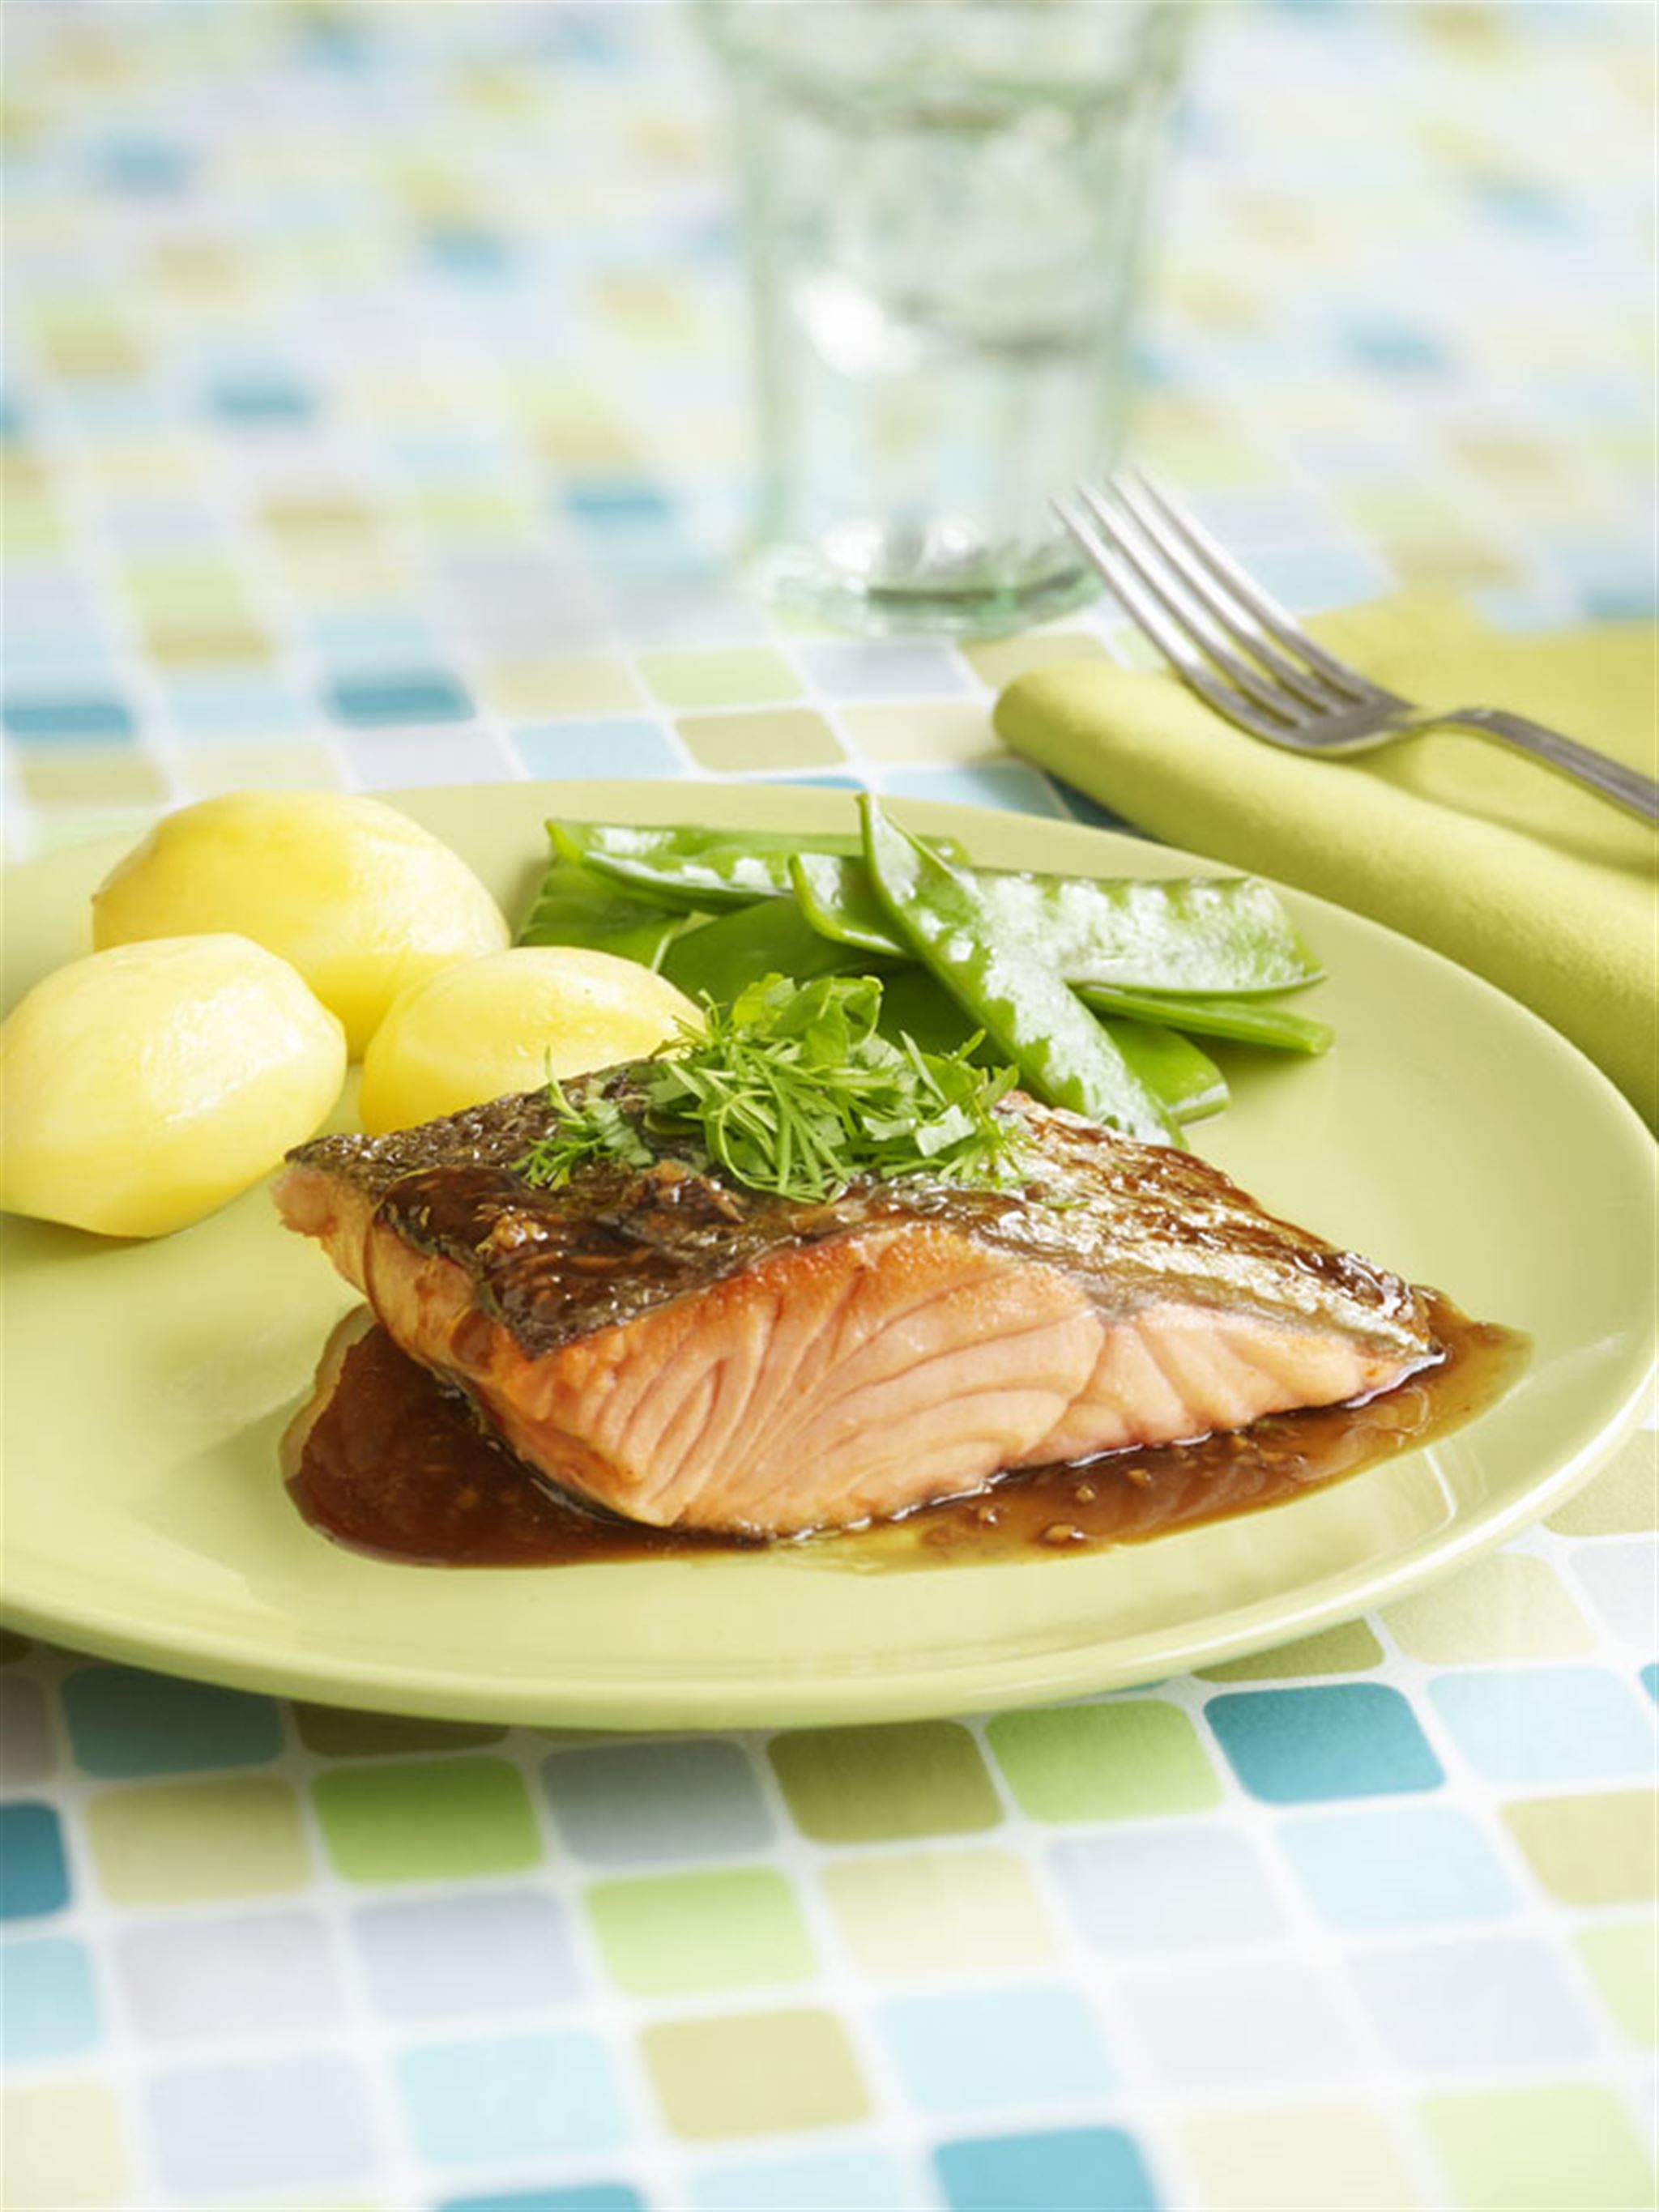 Pan Fried Salmon with Sweet Soy Sauce